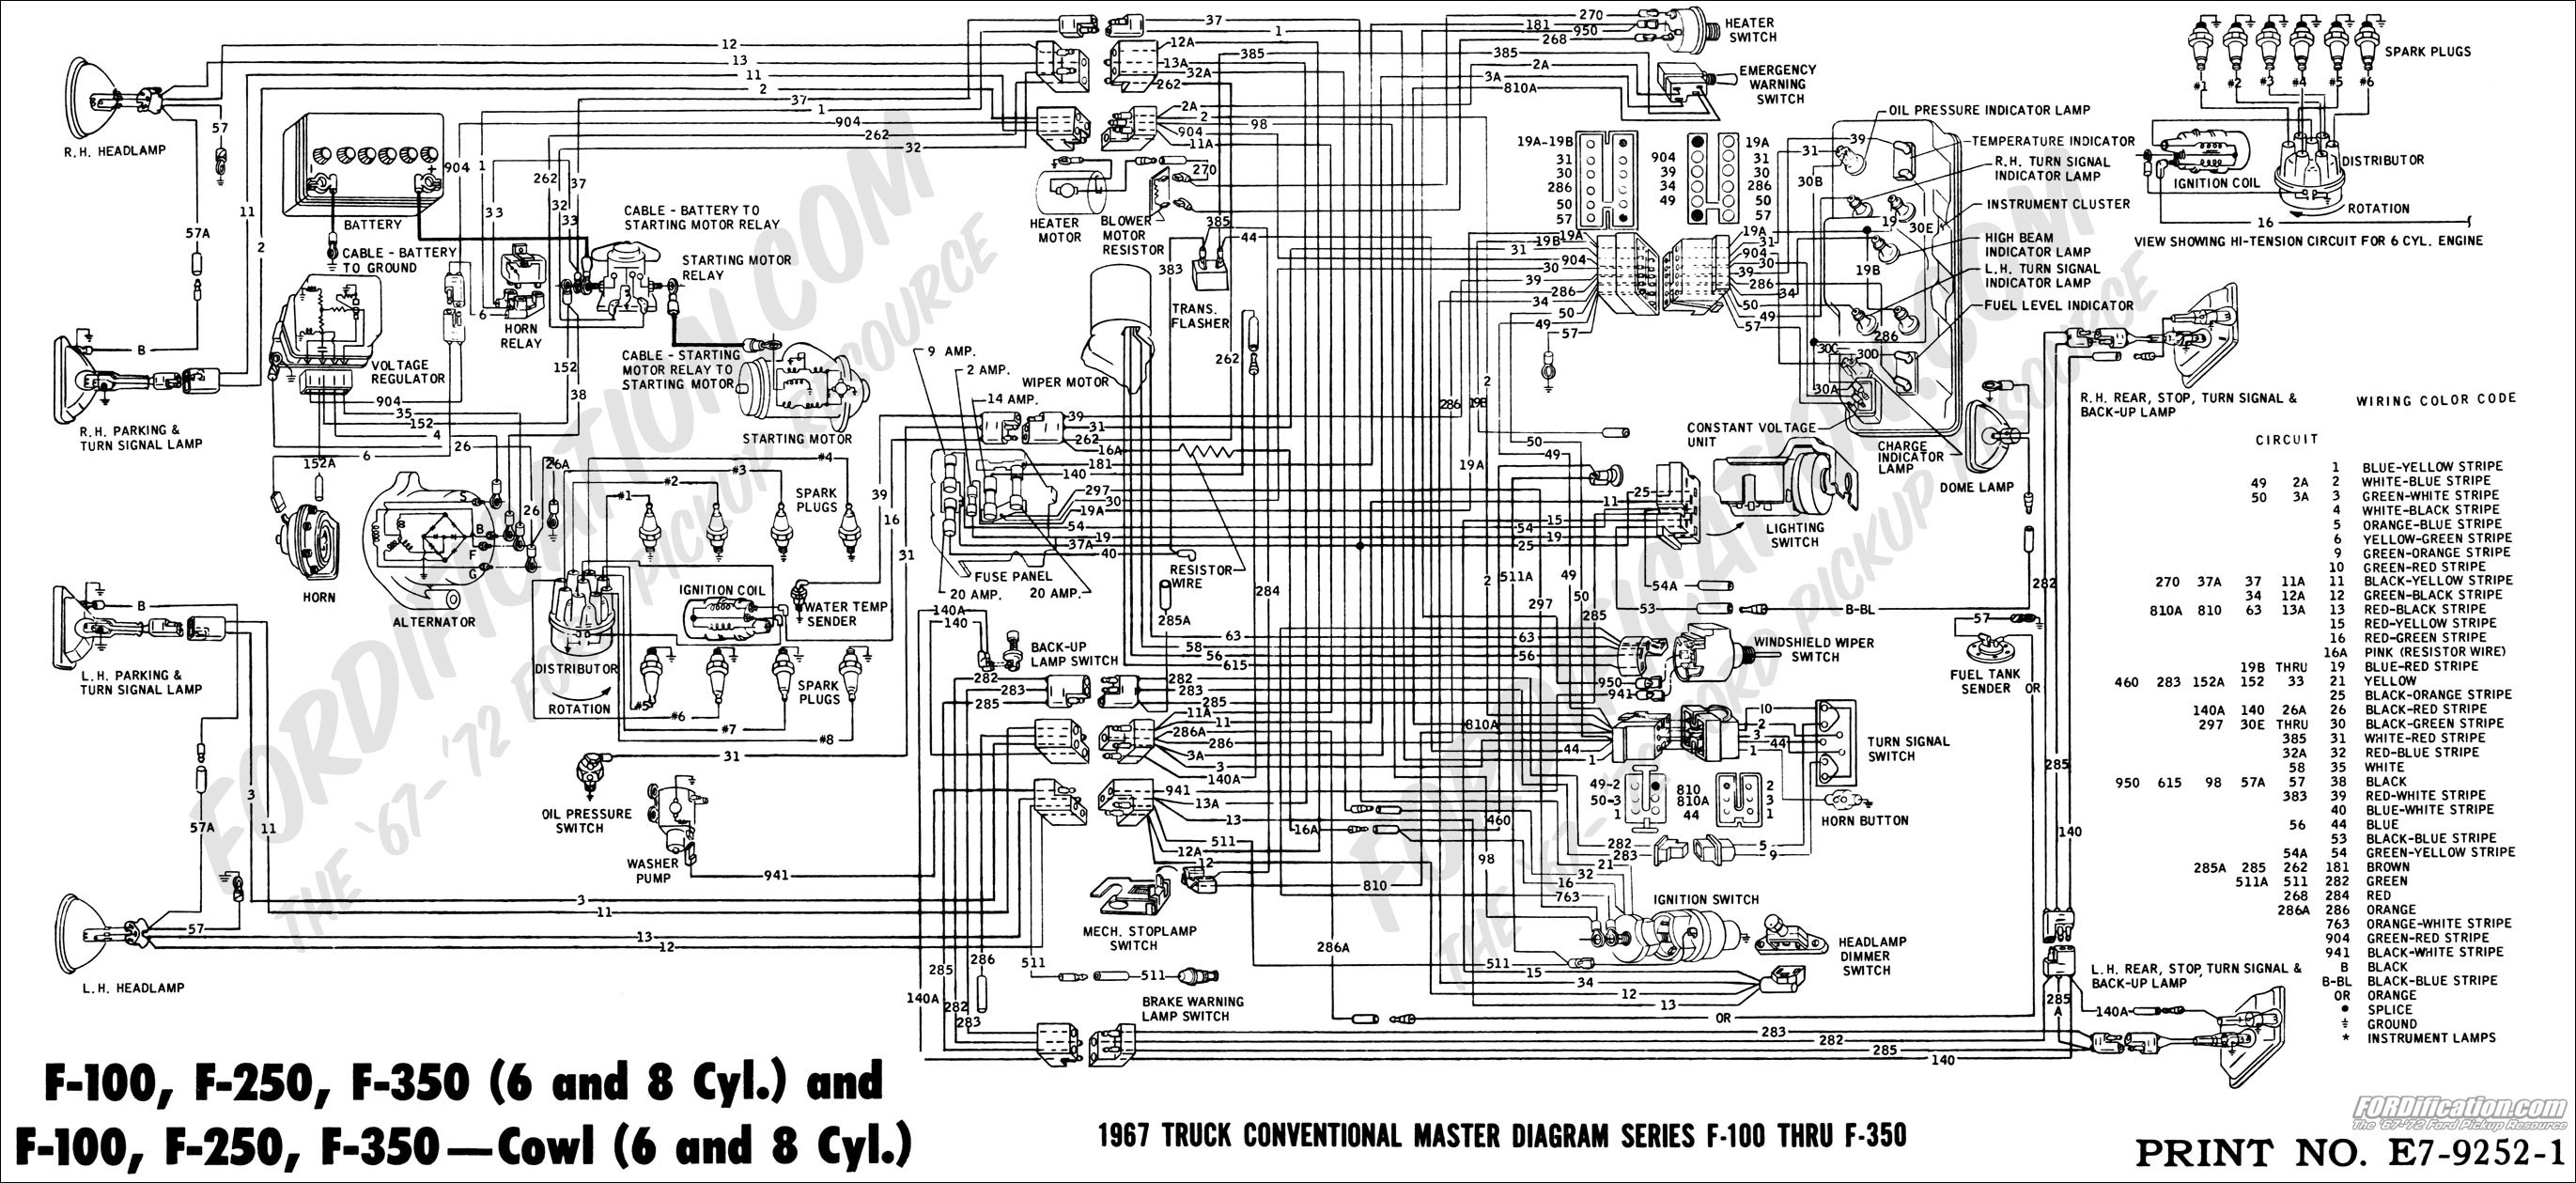 1985 ford f 250 fuse box diagram on 94 ford explorer wiring diagram rh ayseesra co 2001 Ford F-250 Fuse Box Diagram 2000 Ford F-250 Fuse Box Diagram